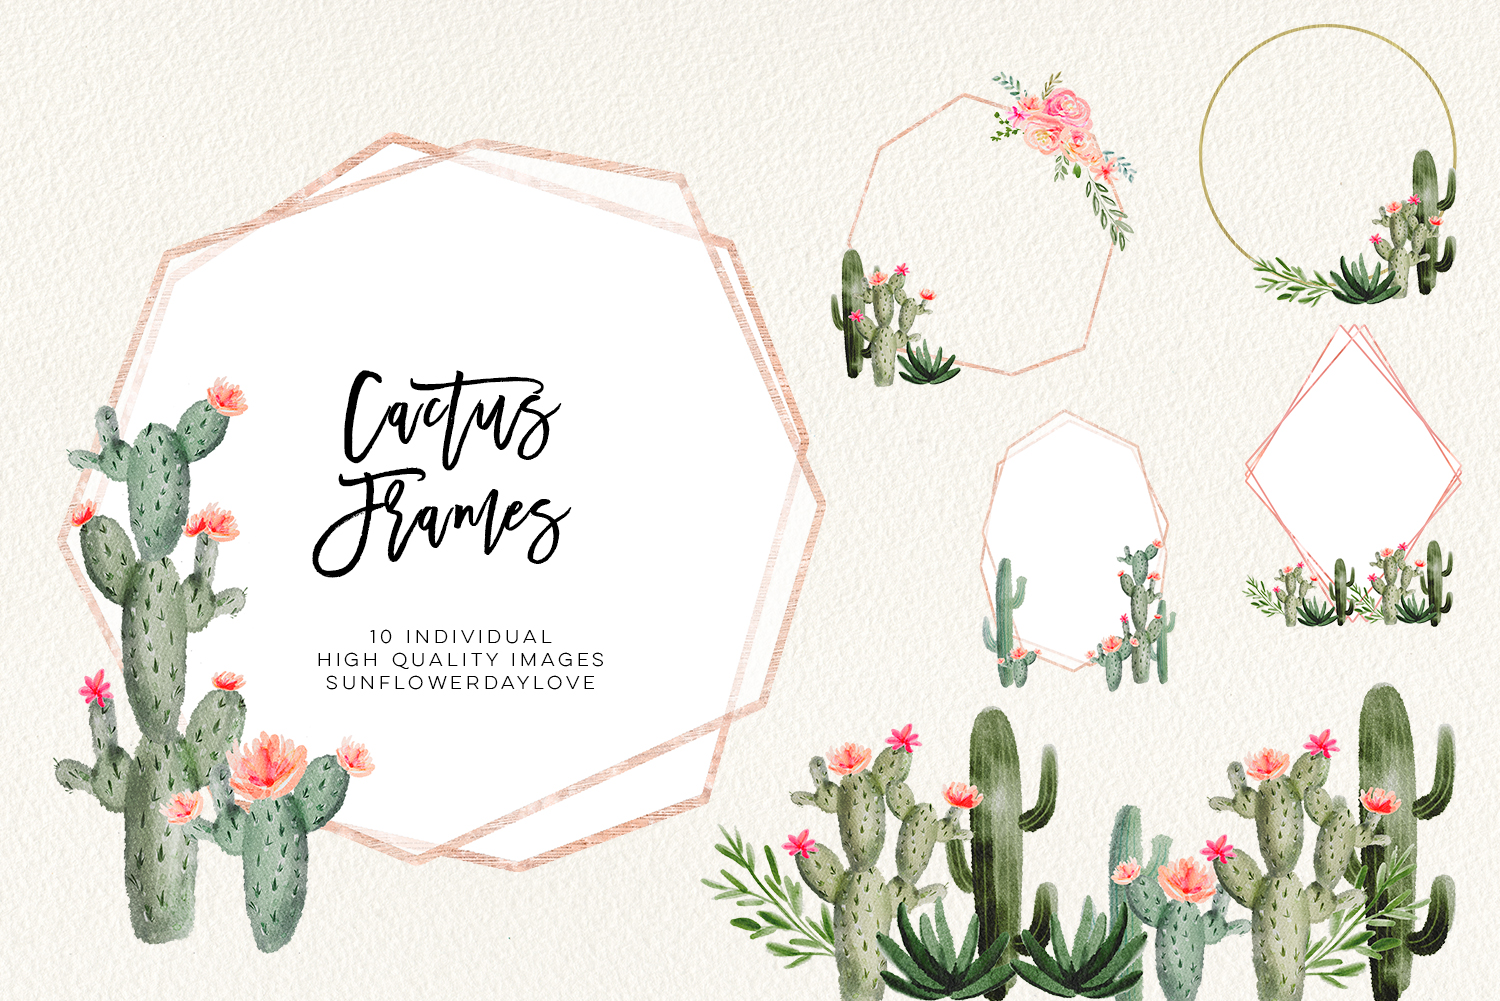 Cactus clipart border clip black and white Succulent cactus frames, succulent borders, Hand Painted Succulent frames,  Watercolor Cactus Cacti instant download, cactus clipart, floral - Vsual clip black and white